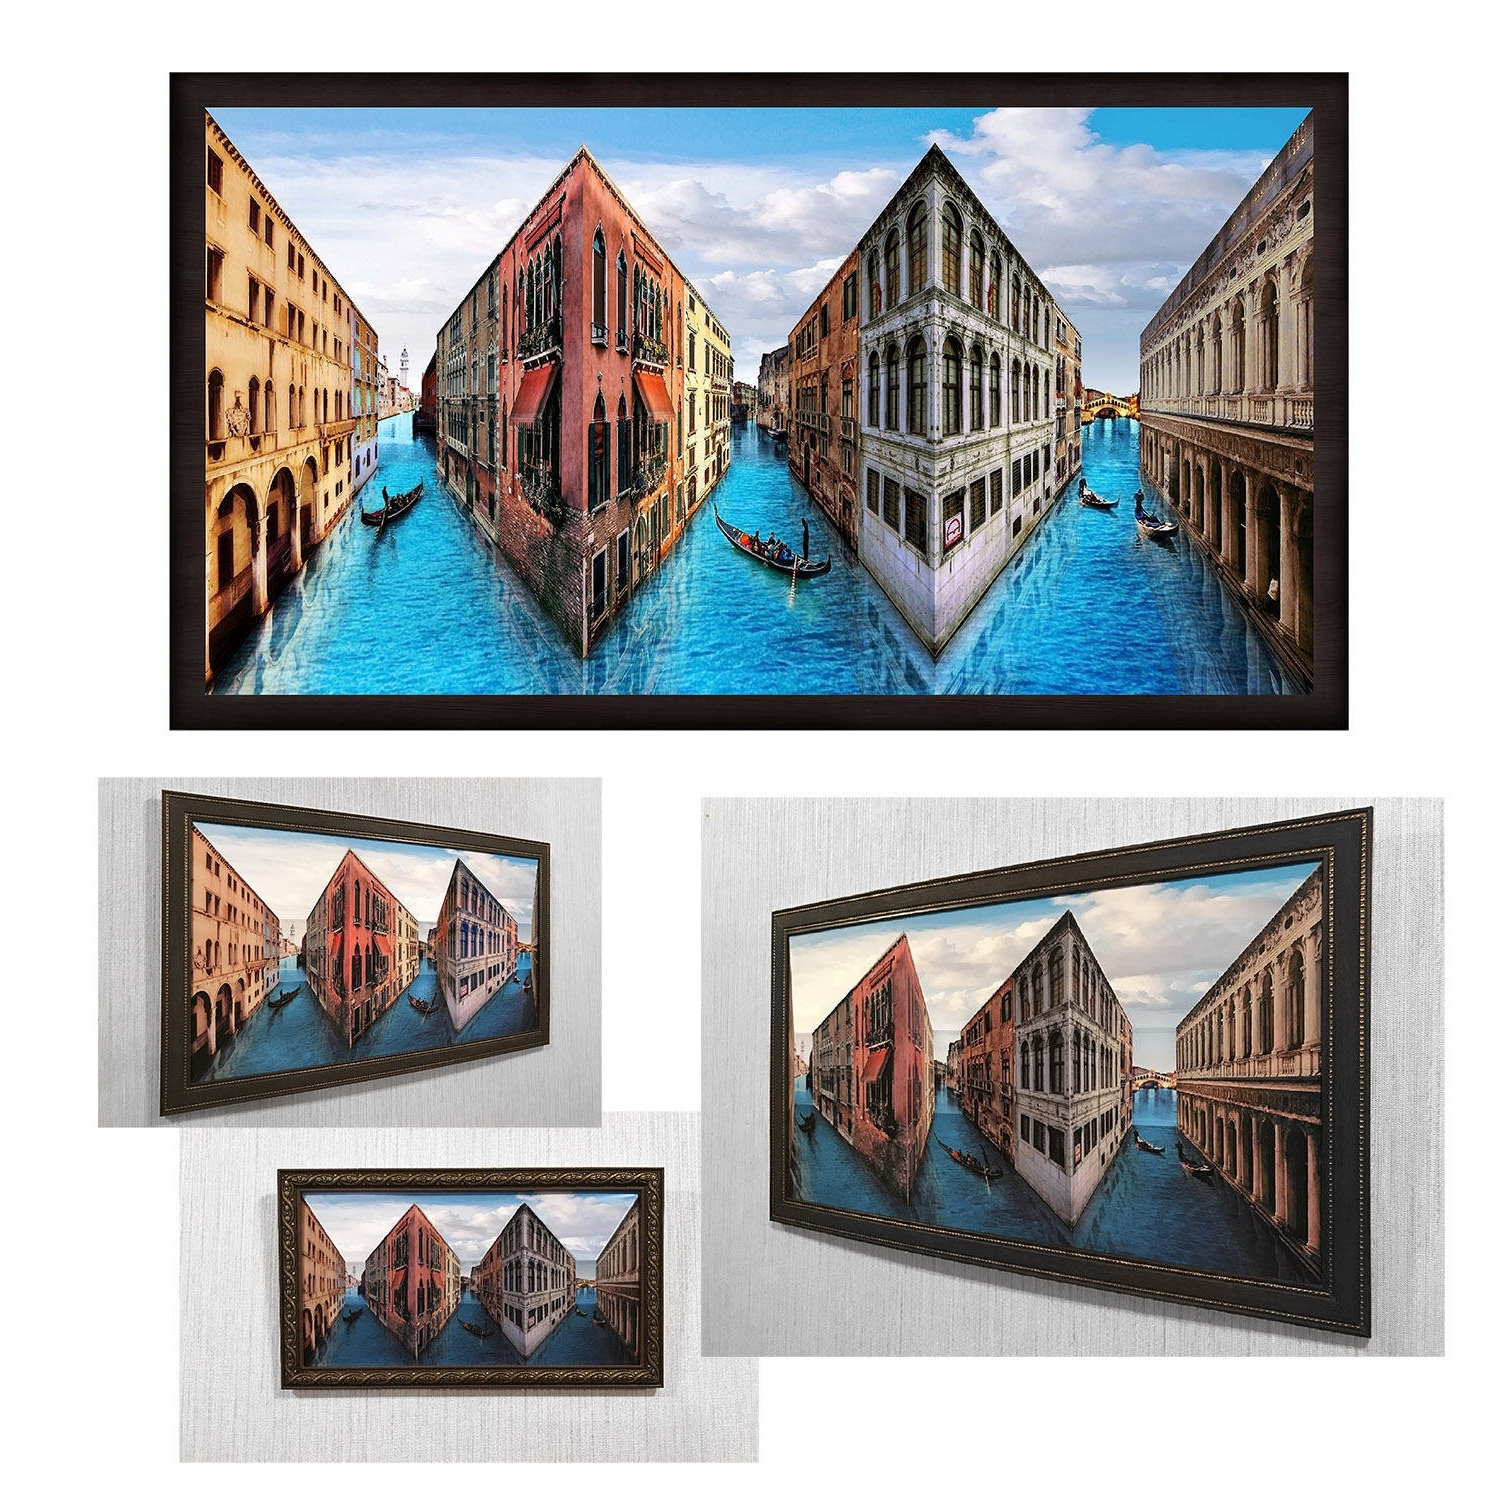 Reverspective, Reverse Perspective Poster Venice, 3D Wall Art With Regard To Most Popular 3D Wall Art Illusions (View 11 of 15)